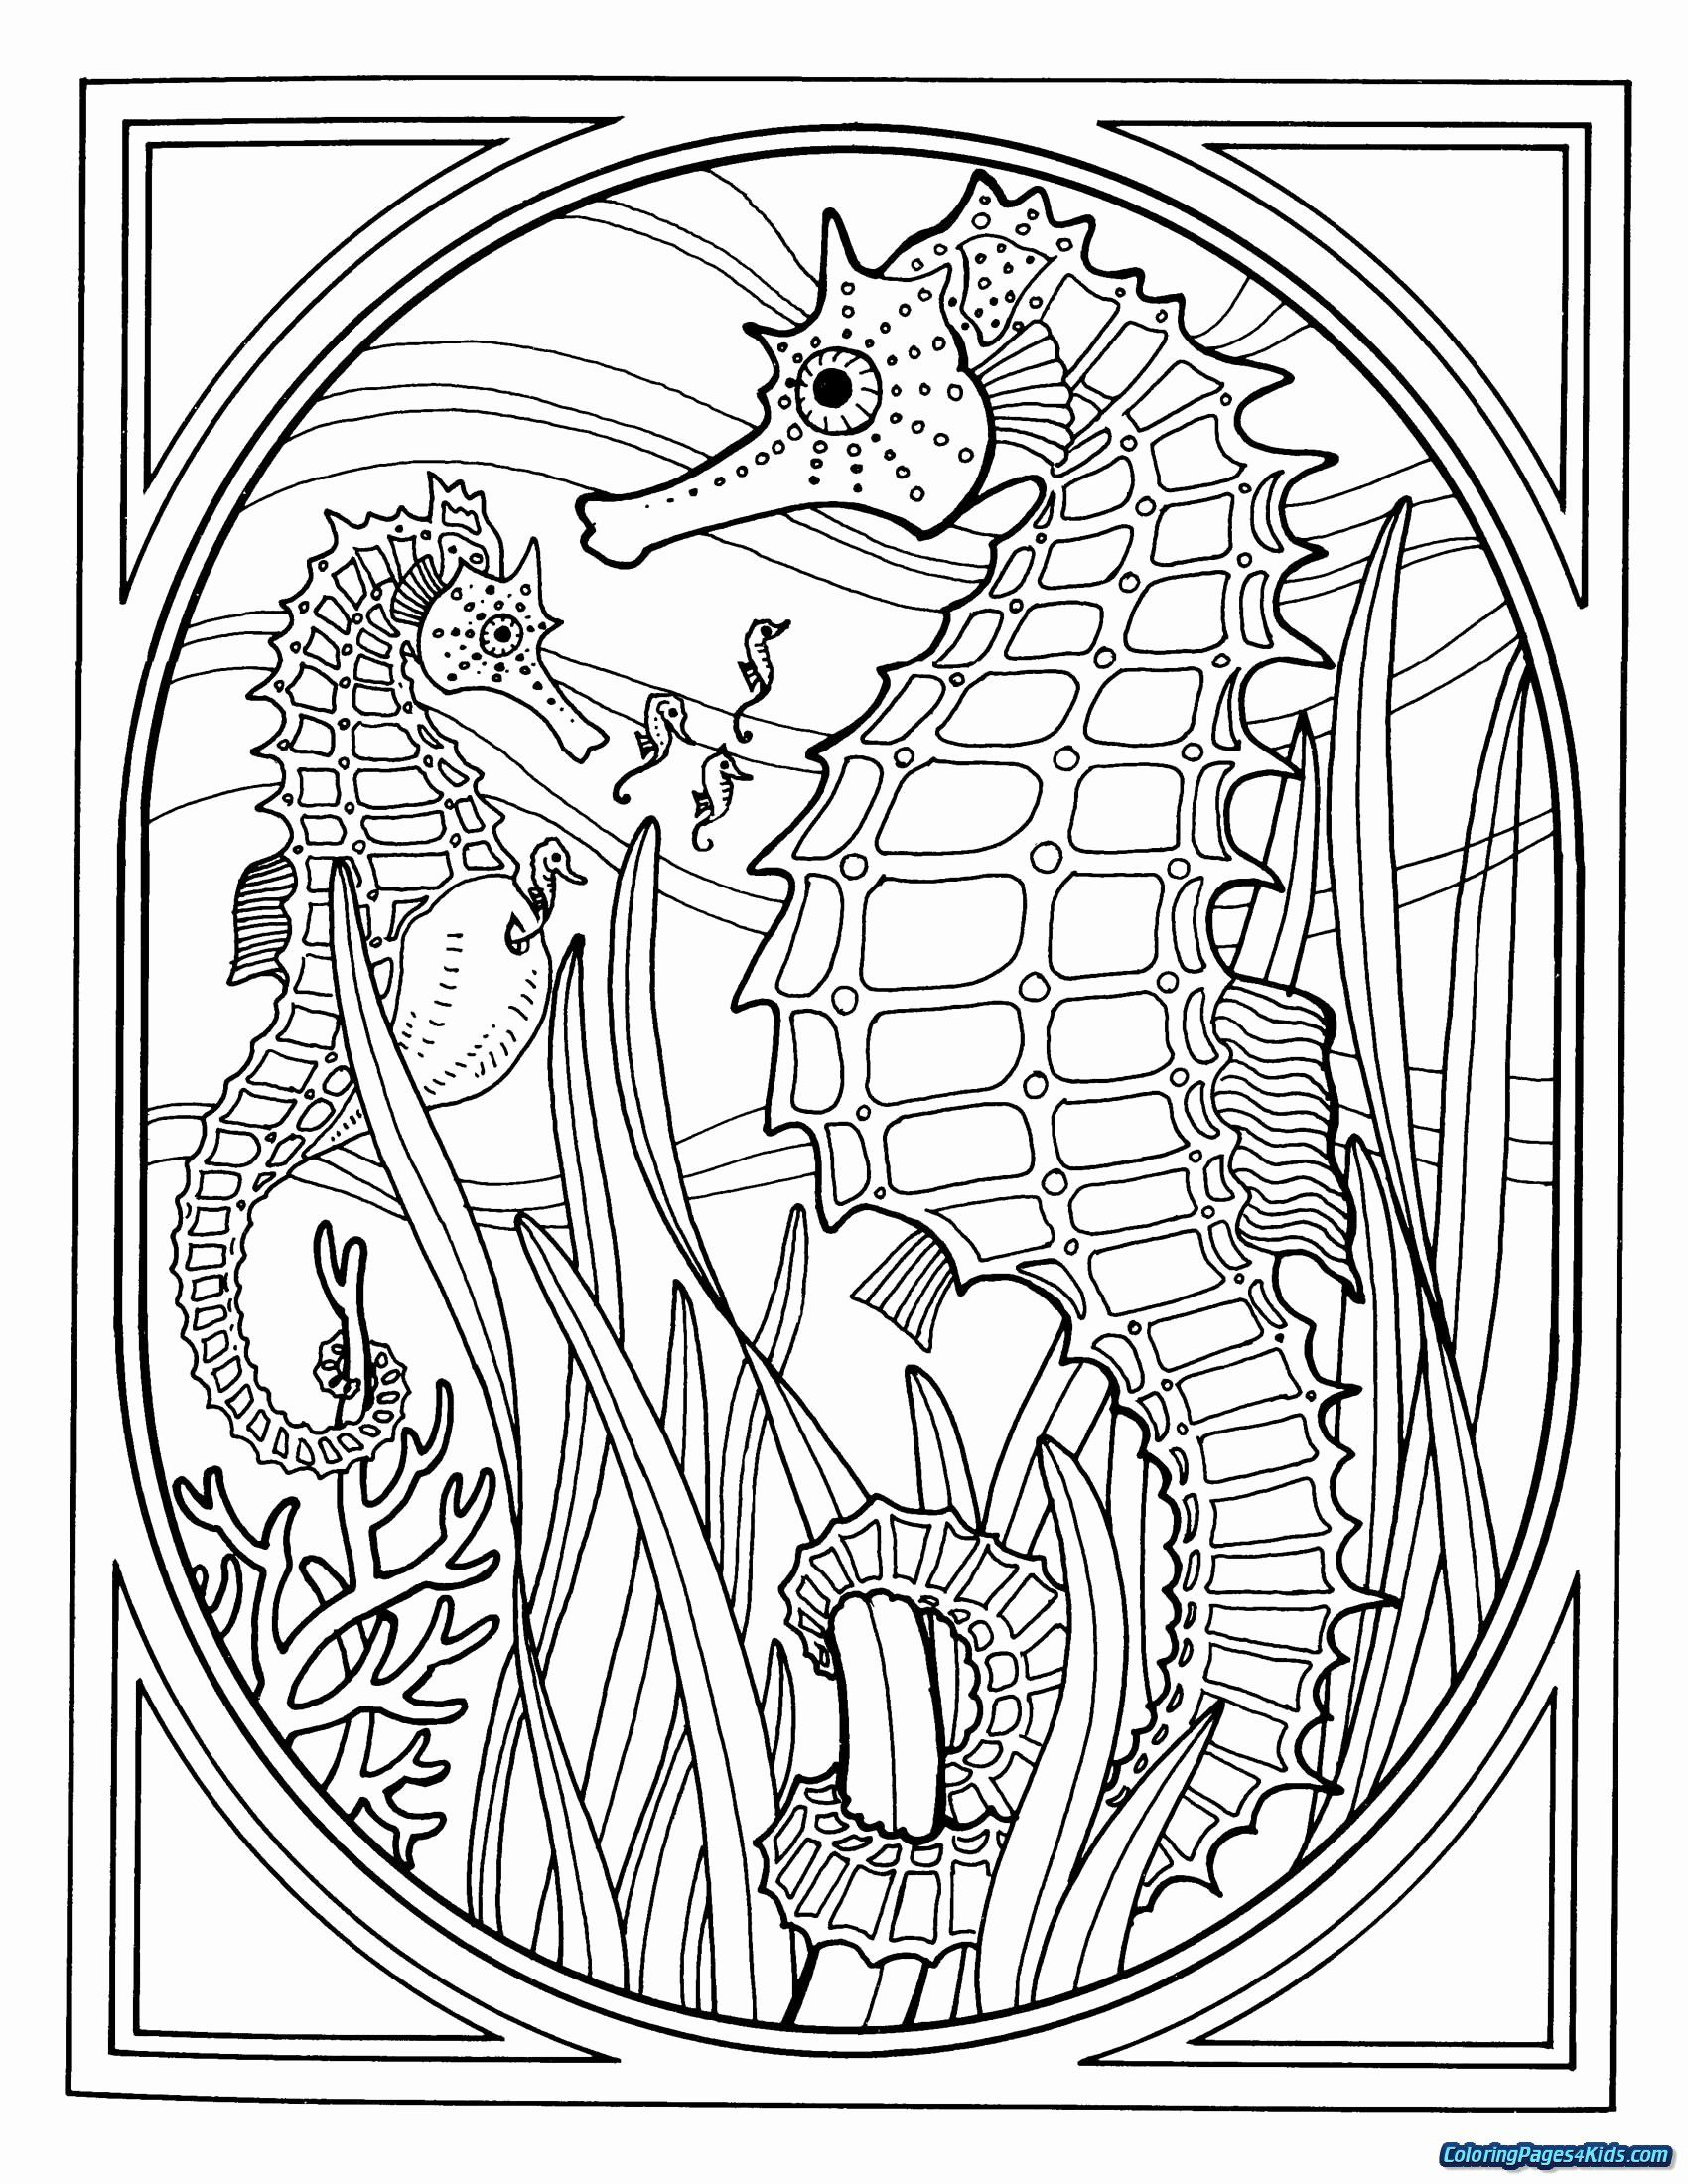 Weird Coloring Pages For Adults Unique Coloring Ideas 44